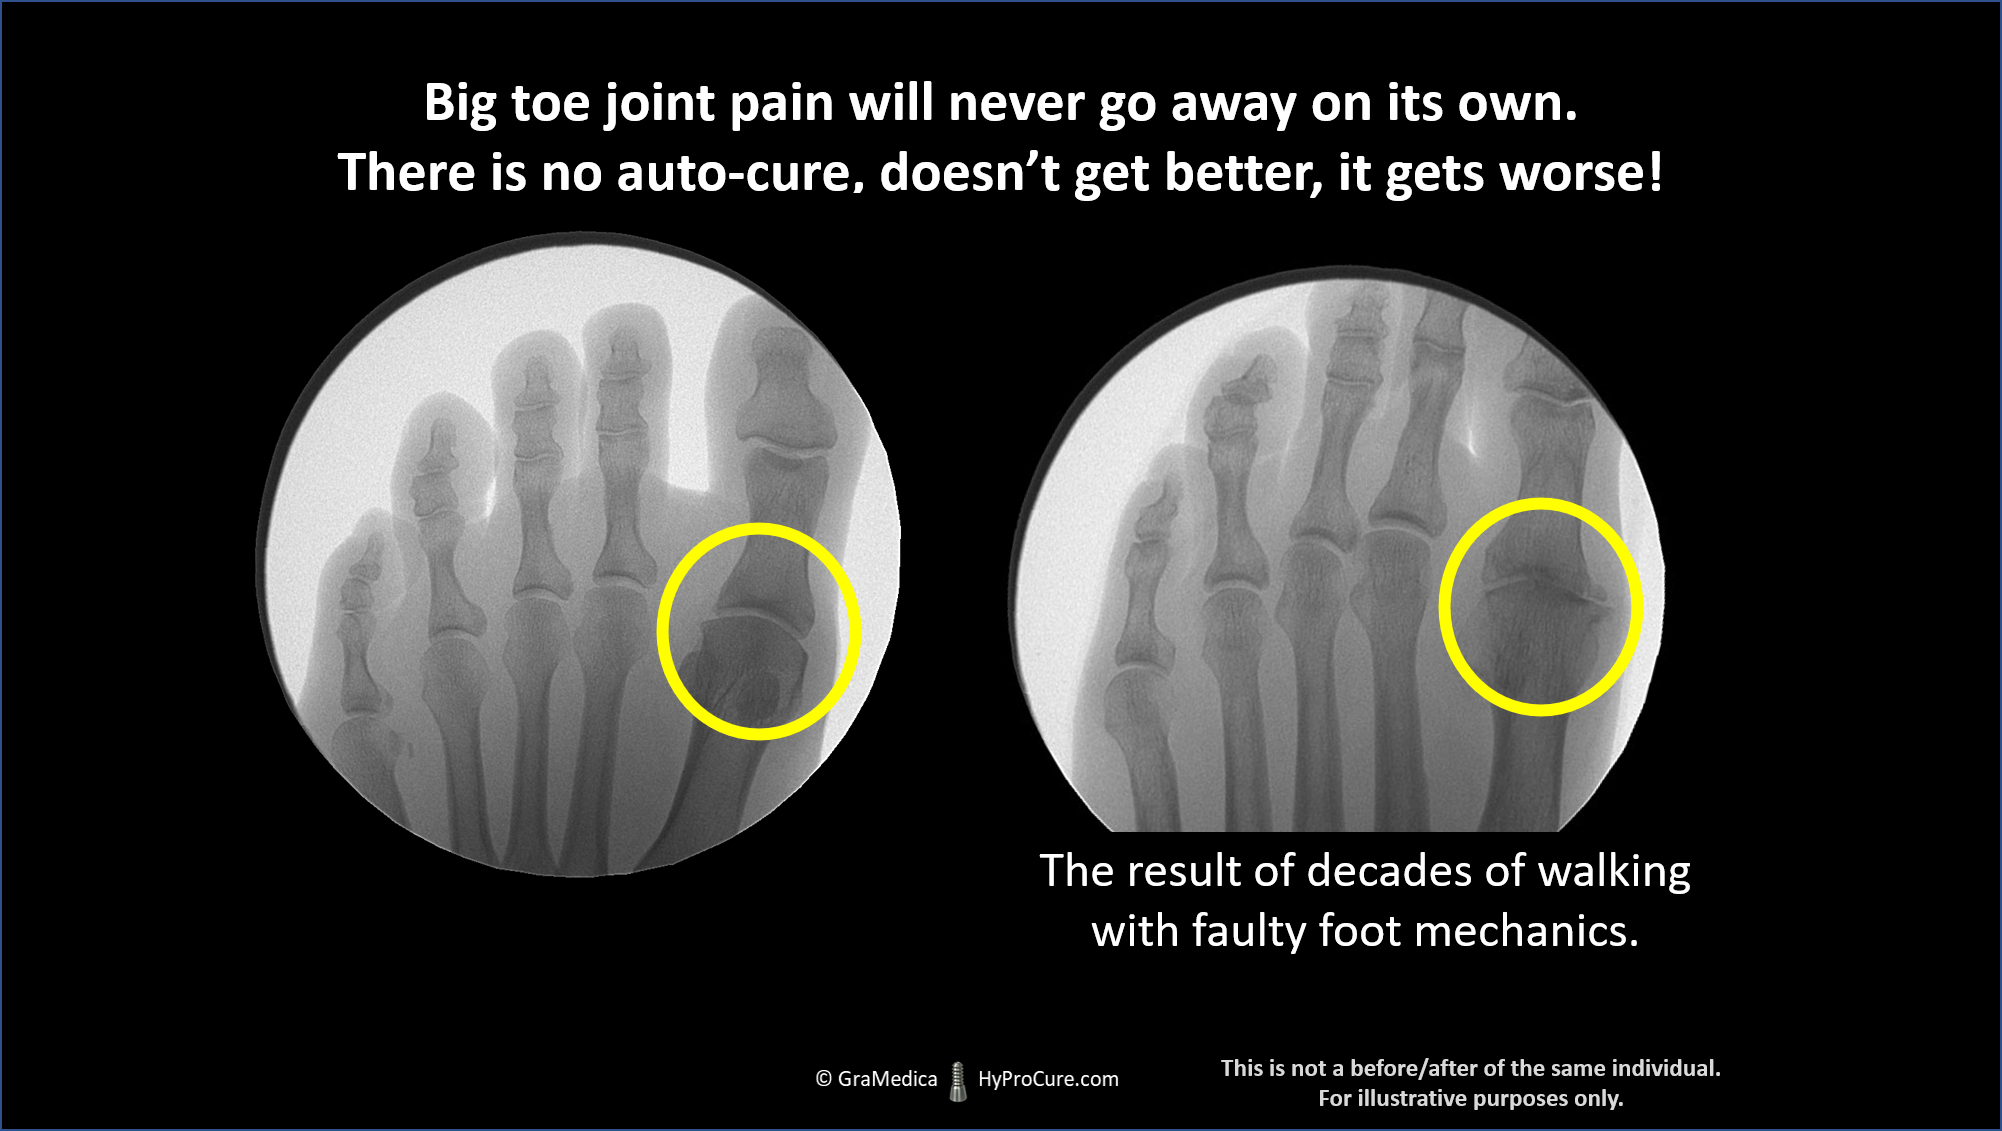 Foot x-ray showing the results of decades of walking with faulty foot mechanics